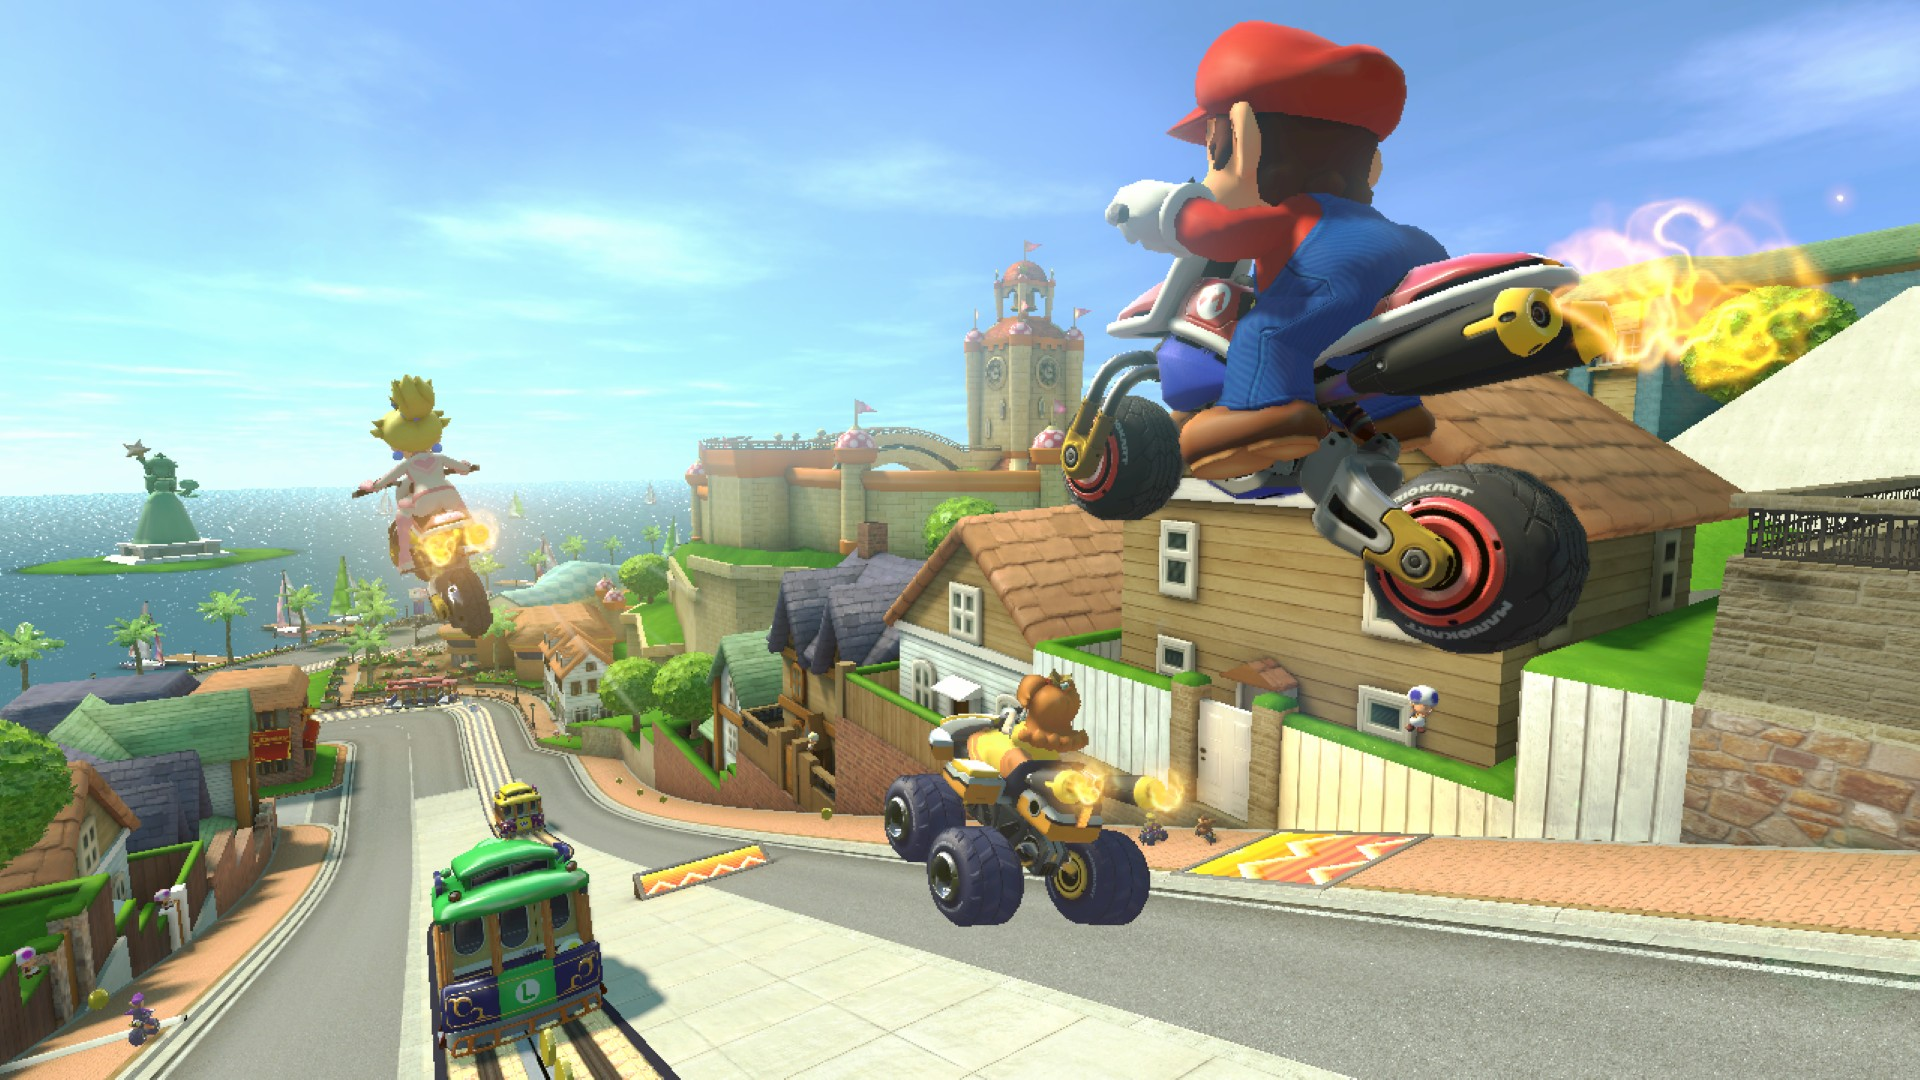 Mario Kart 8 Background: Mario Kart 8 HD Wallpaper